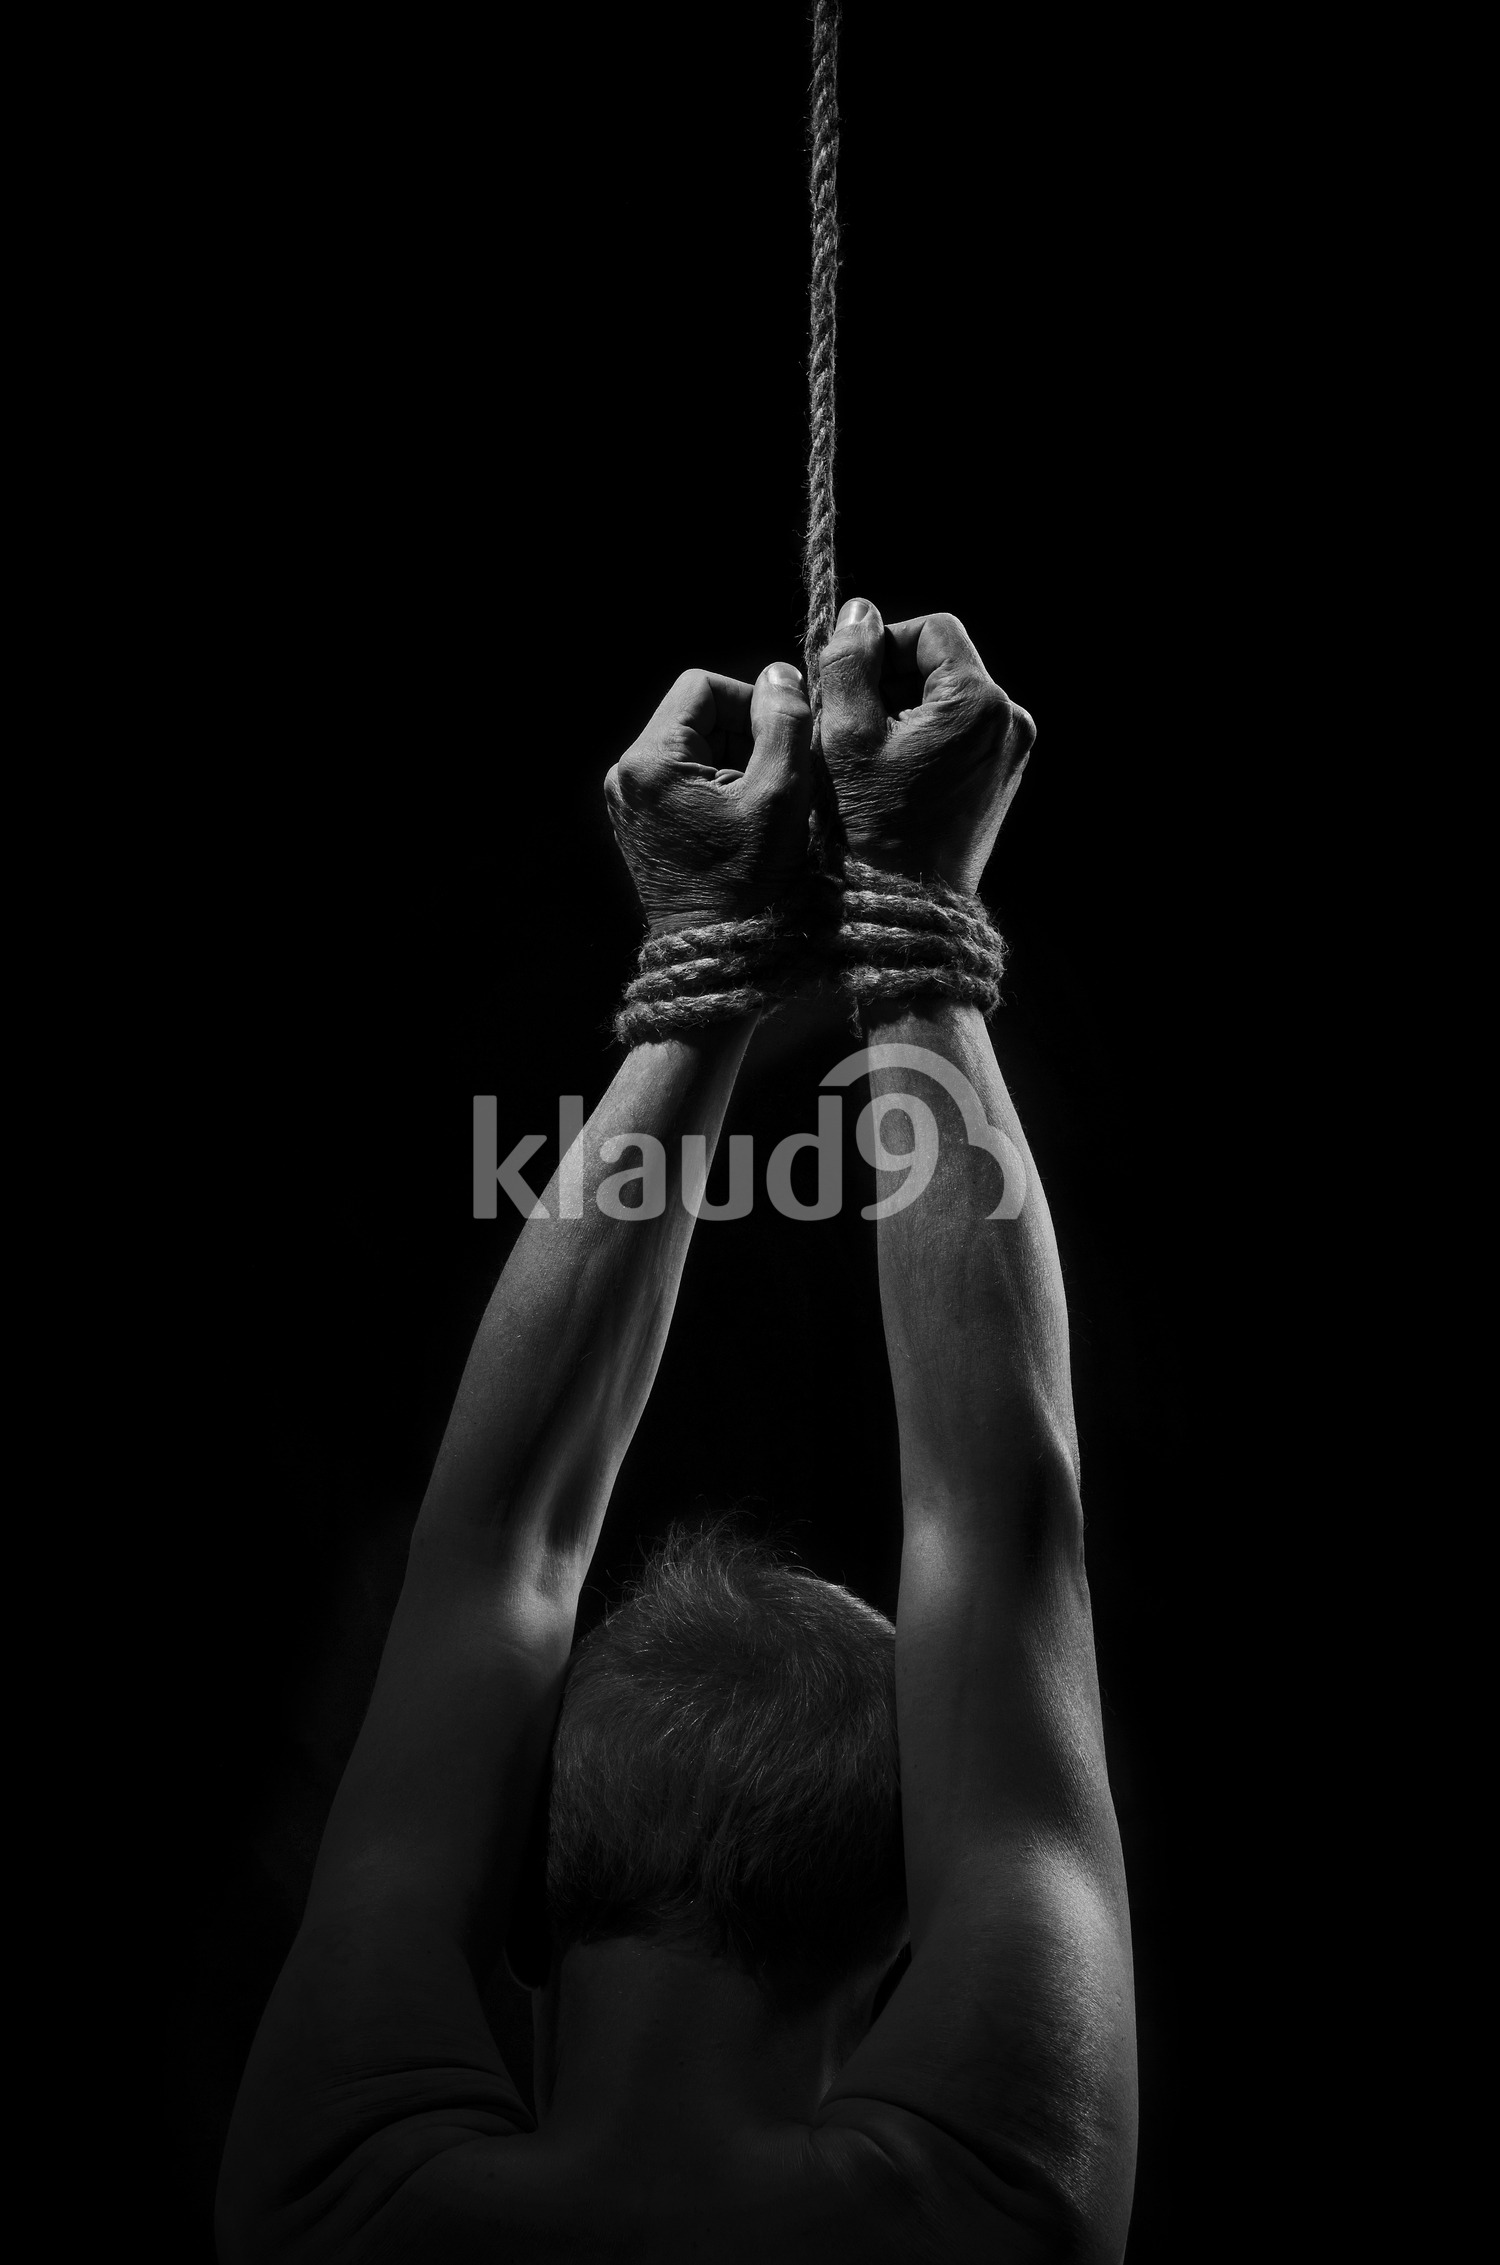 Suspended by ropes